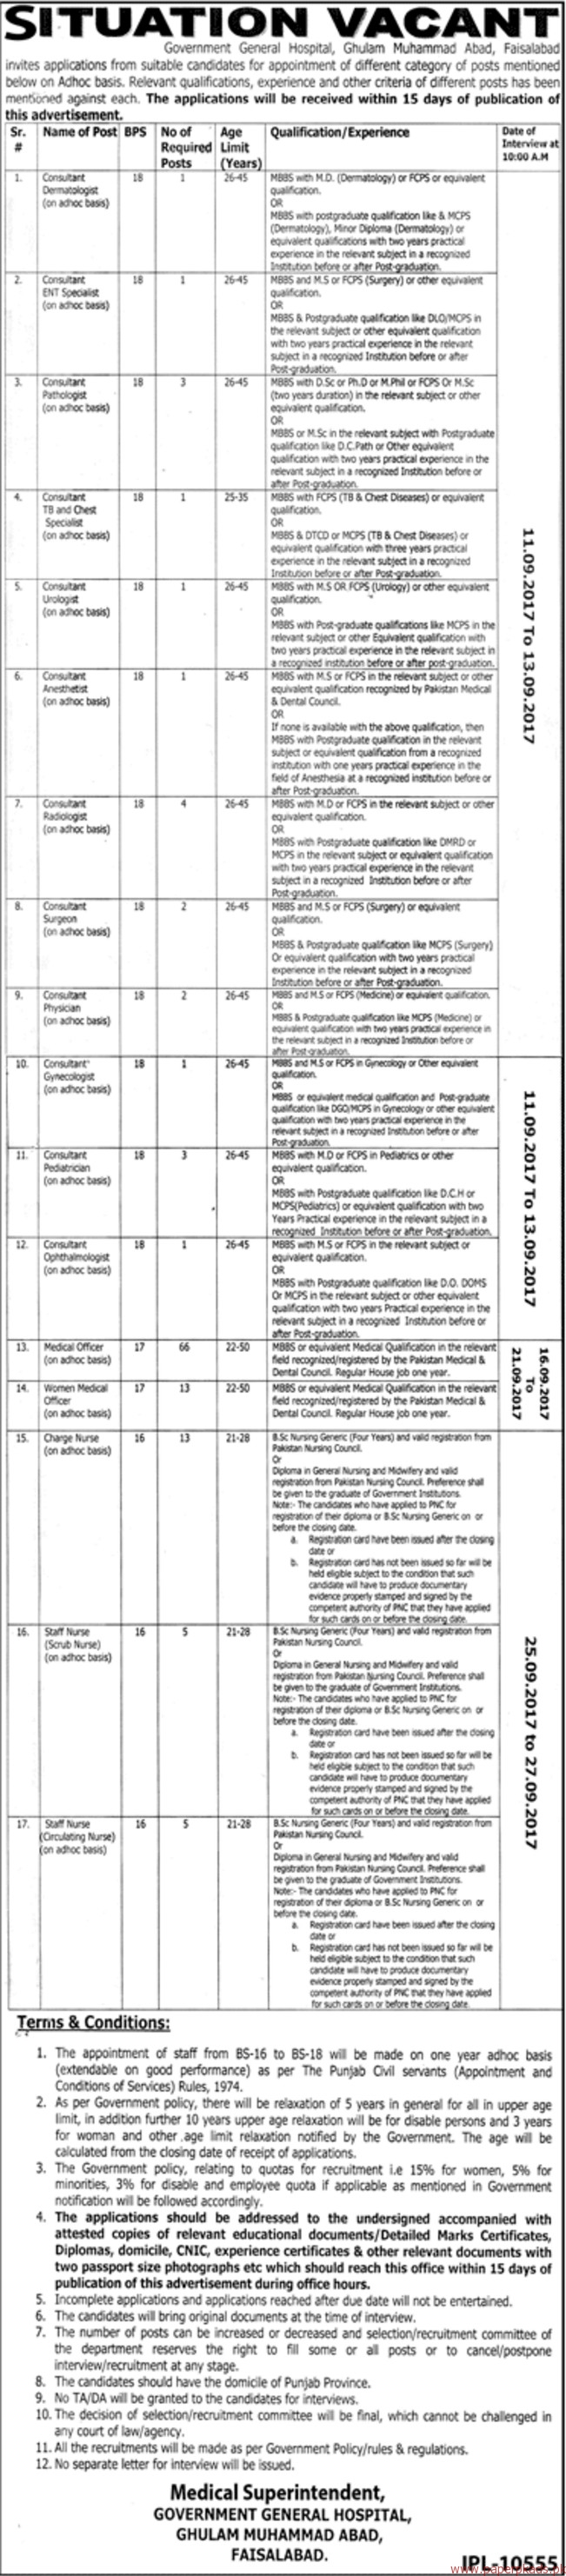 Government General Hospital Ghulam Muhammad Abad Faisalabad Jobs